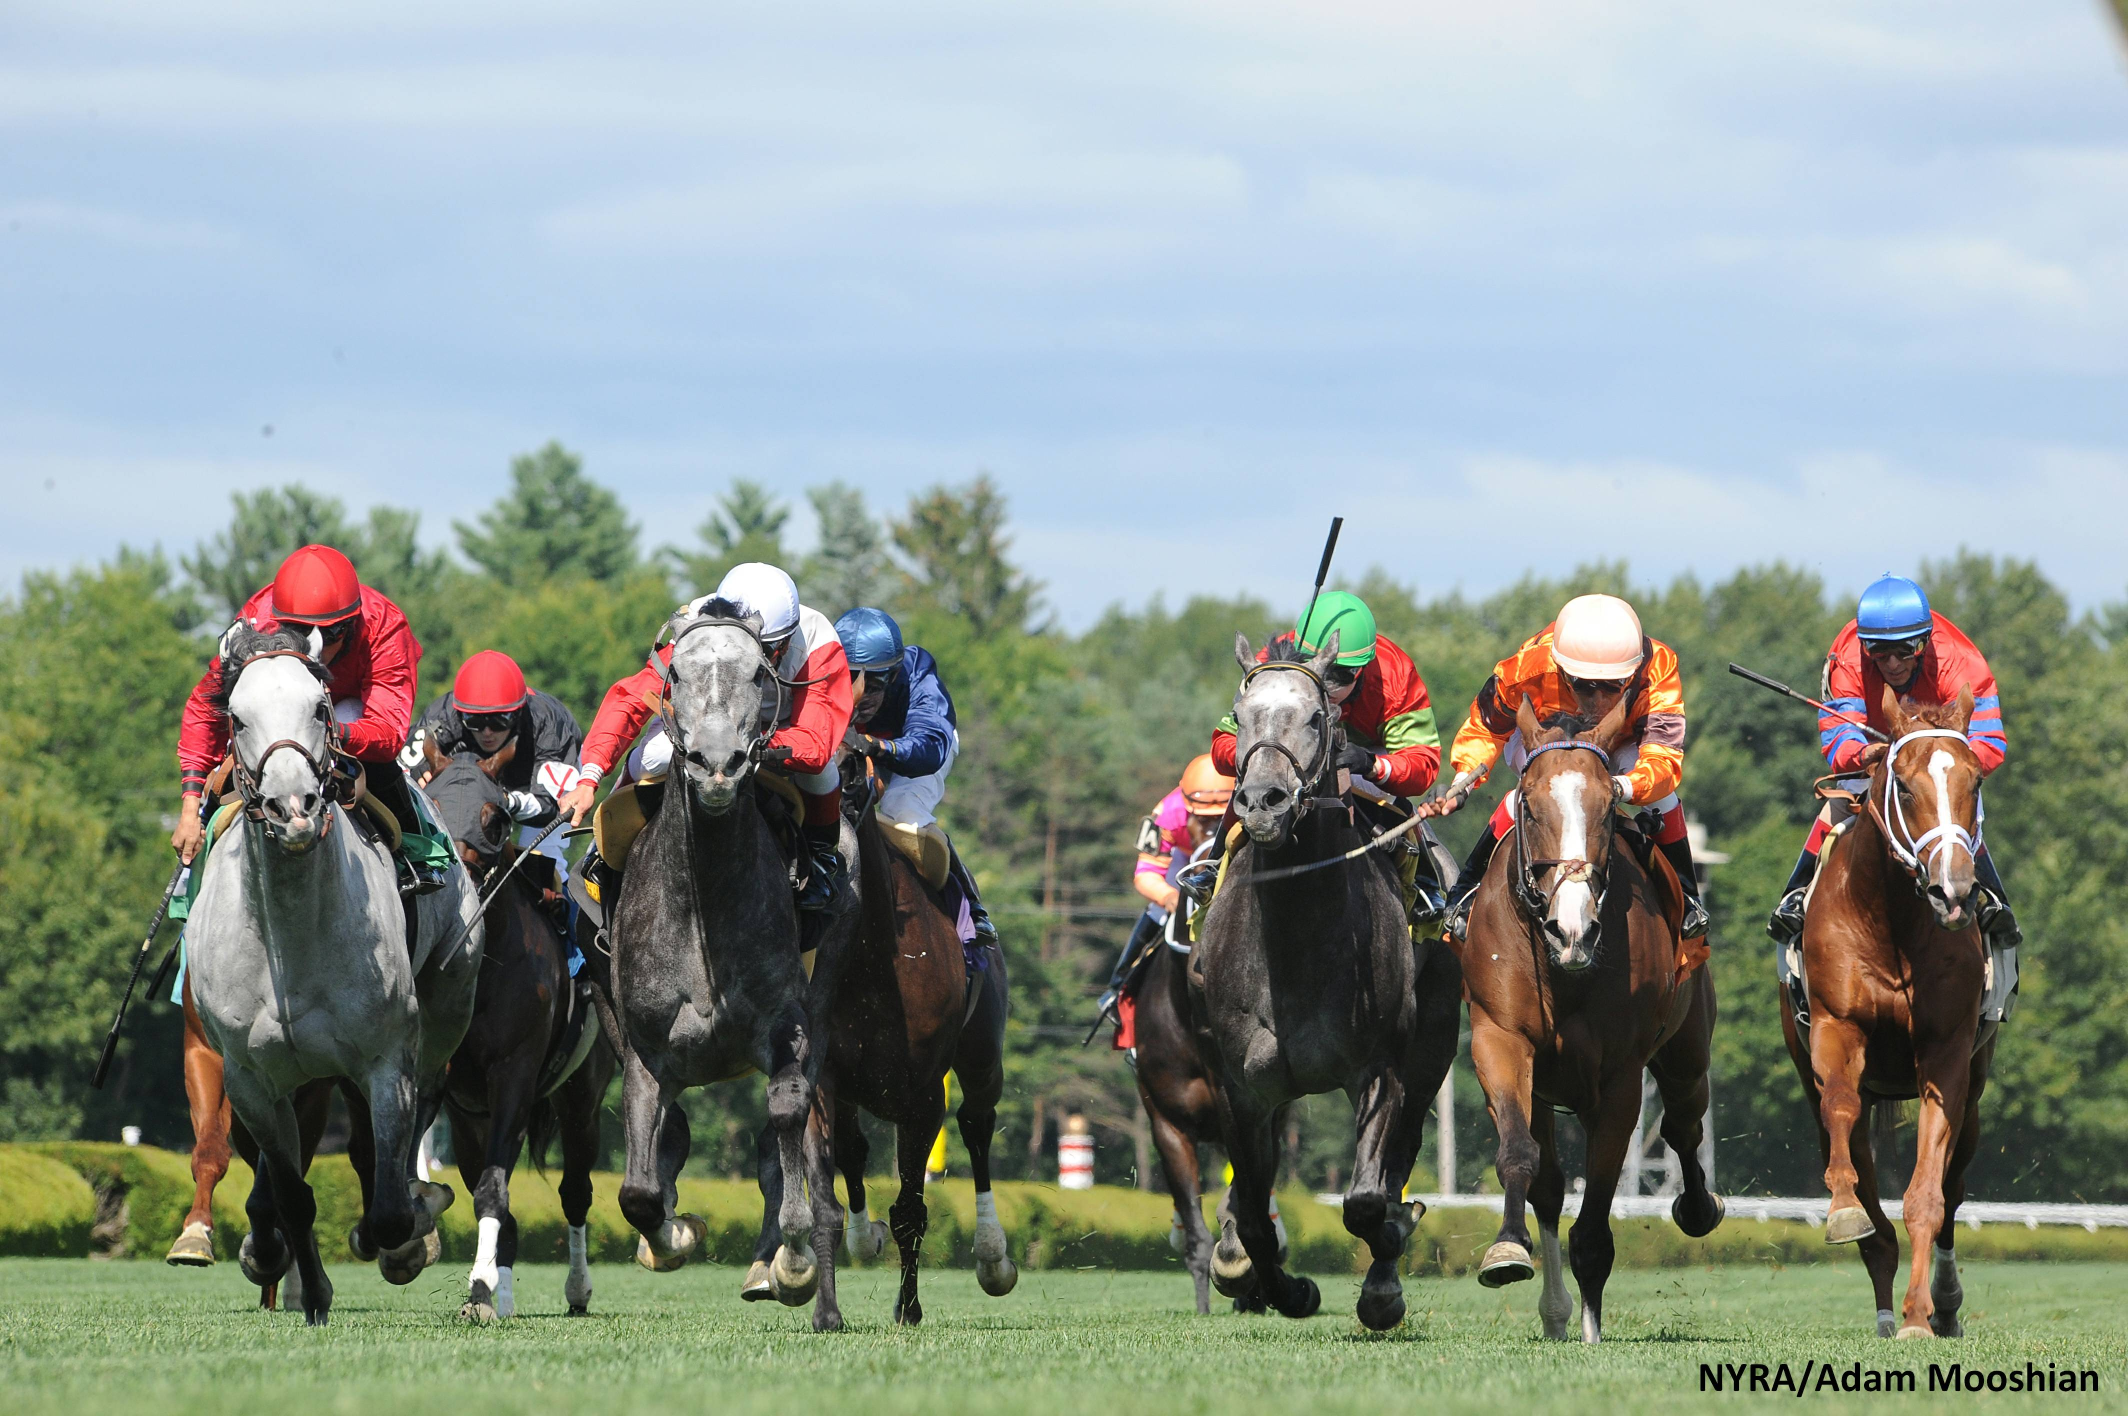 Saratoga Racing August 9 – Race 8 Analysis, Picks & Best Bets